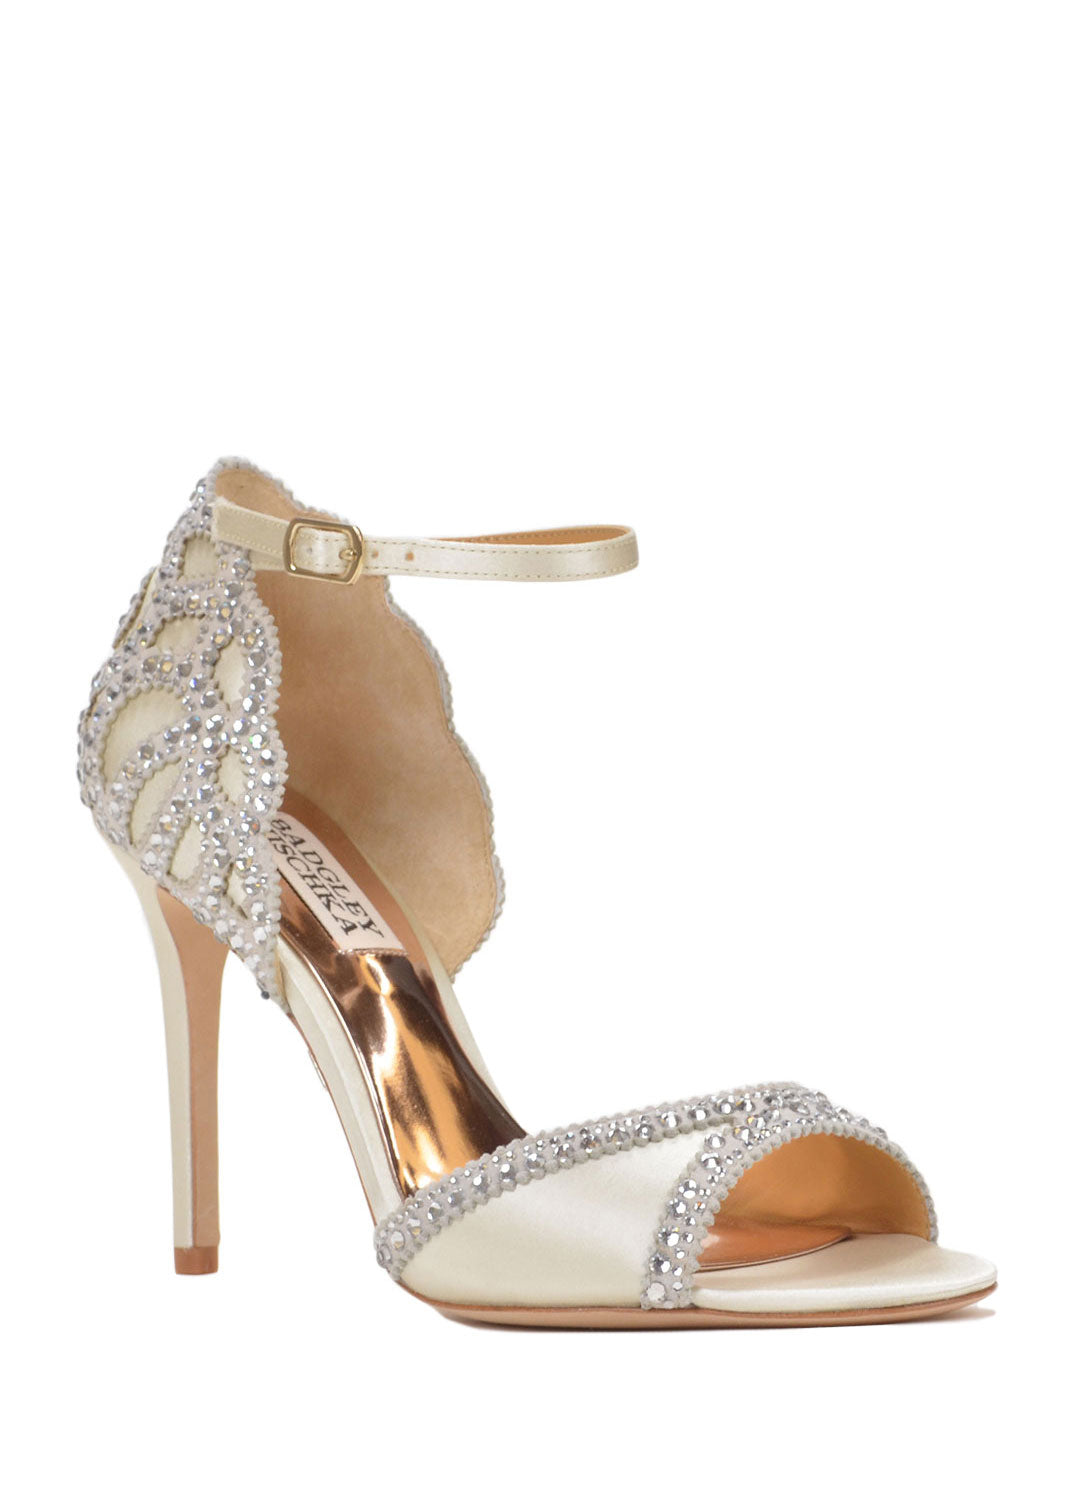 Roxy - Shoes - Badgley Mischka - Eternal Bridal